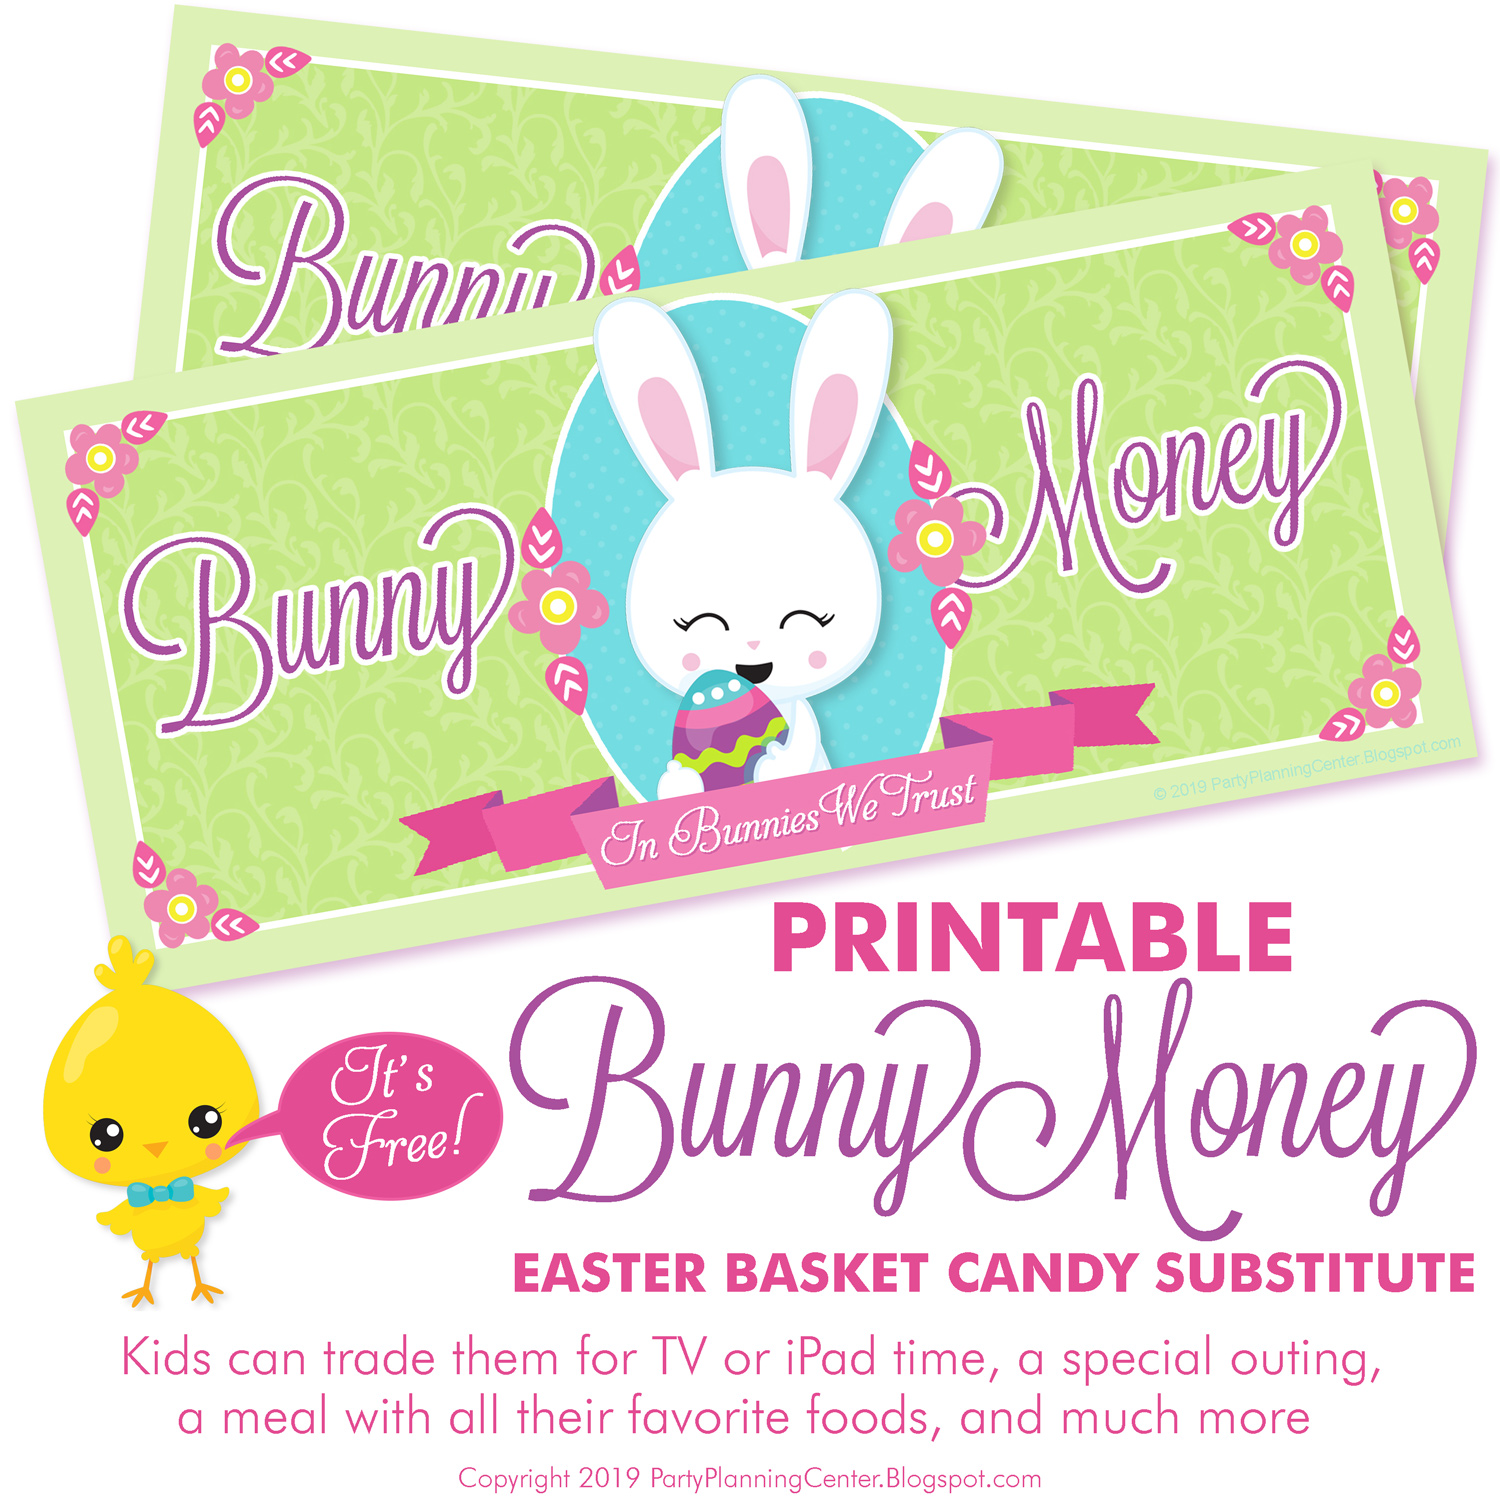 free printable Easter Bunny Money